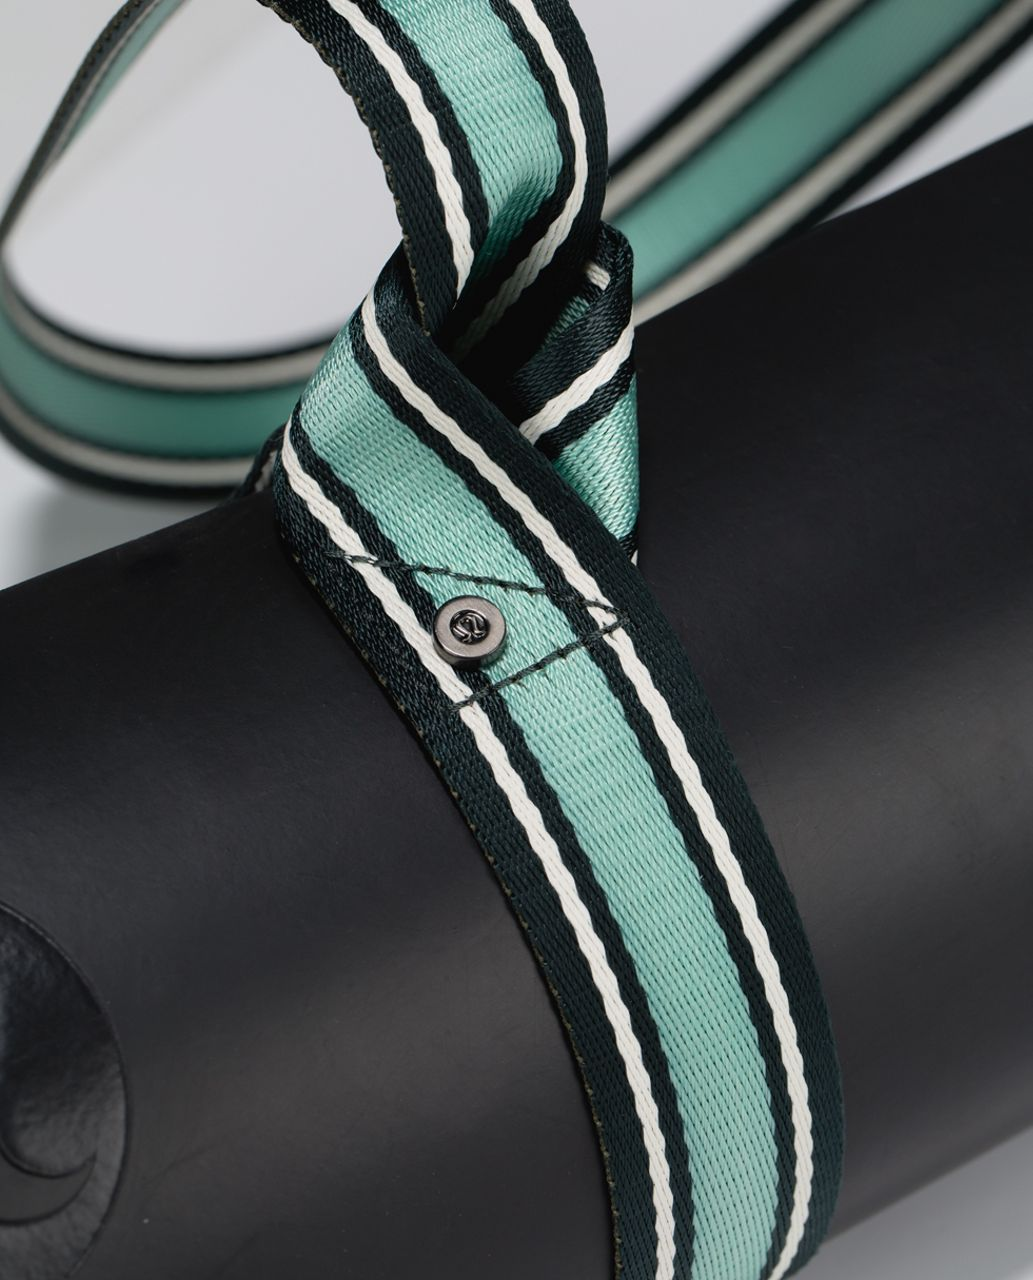 Lululemon Loop It Up Mat Strap - Fuel Green / Ghost / Toothpaste